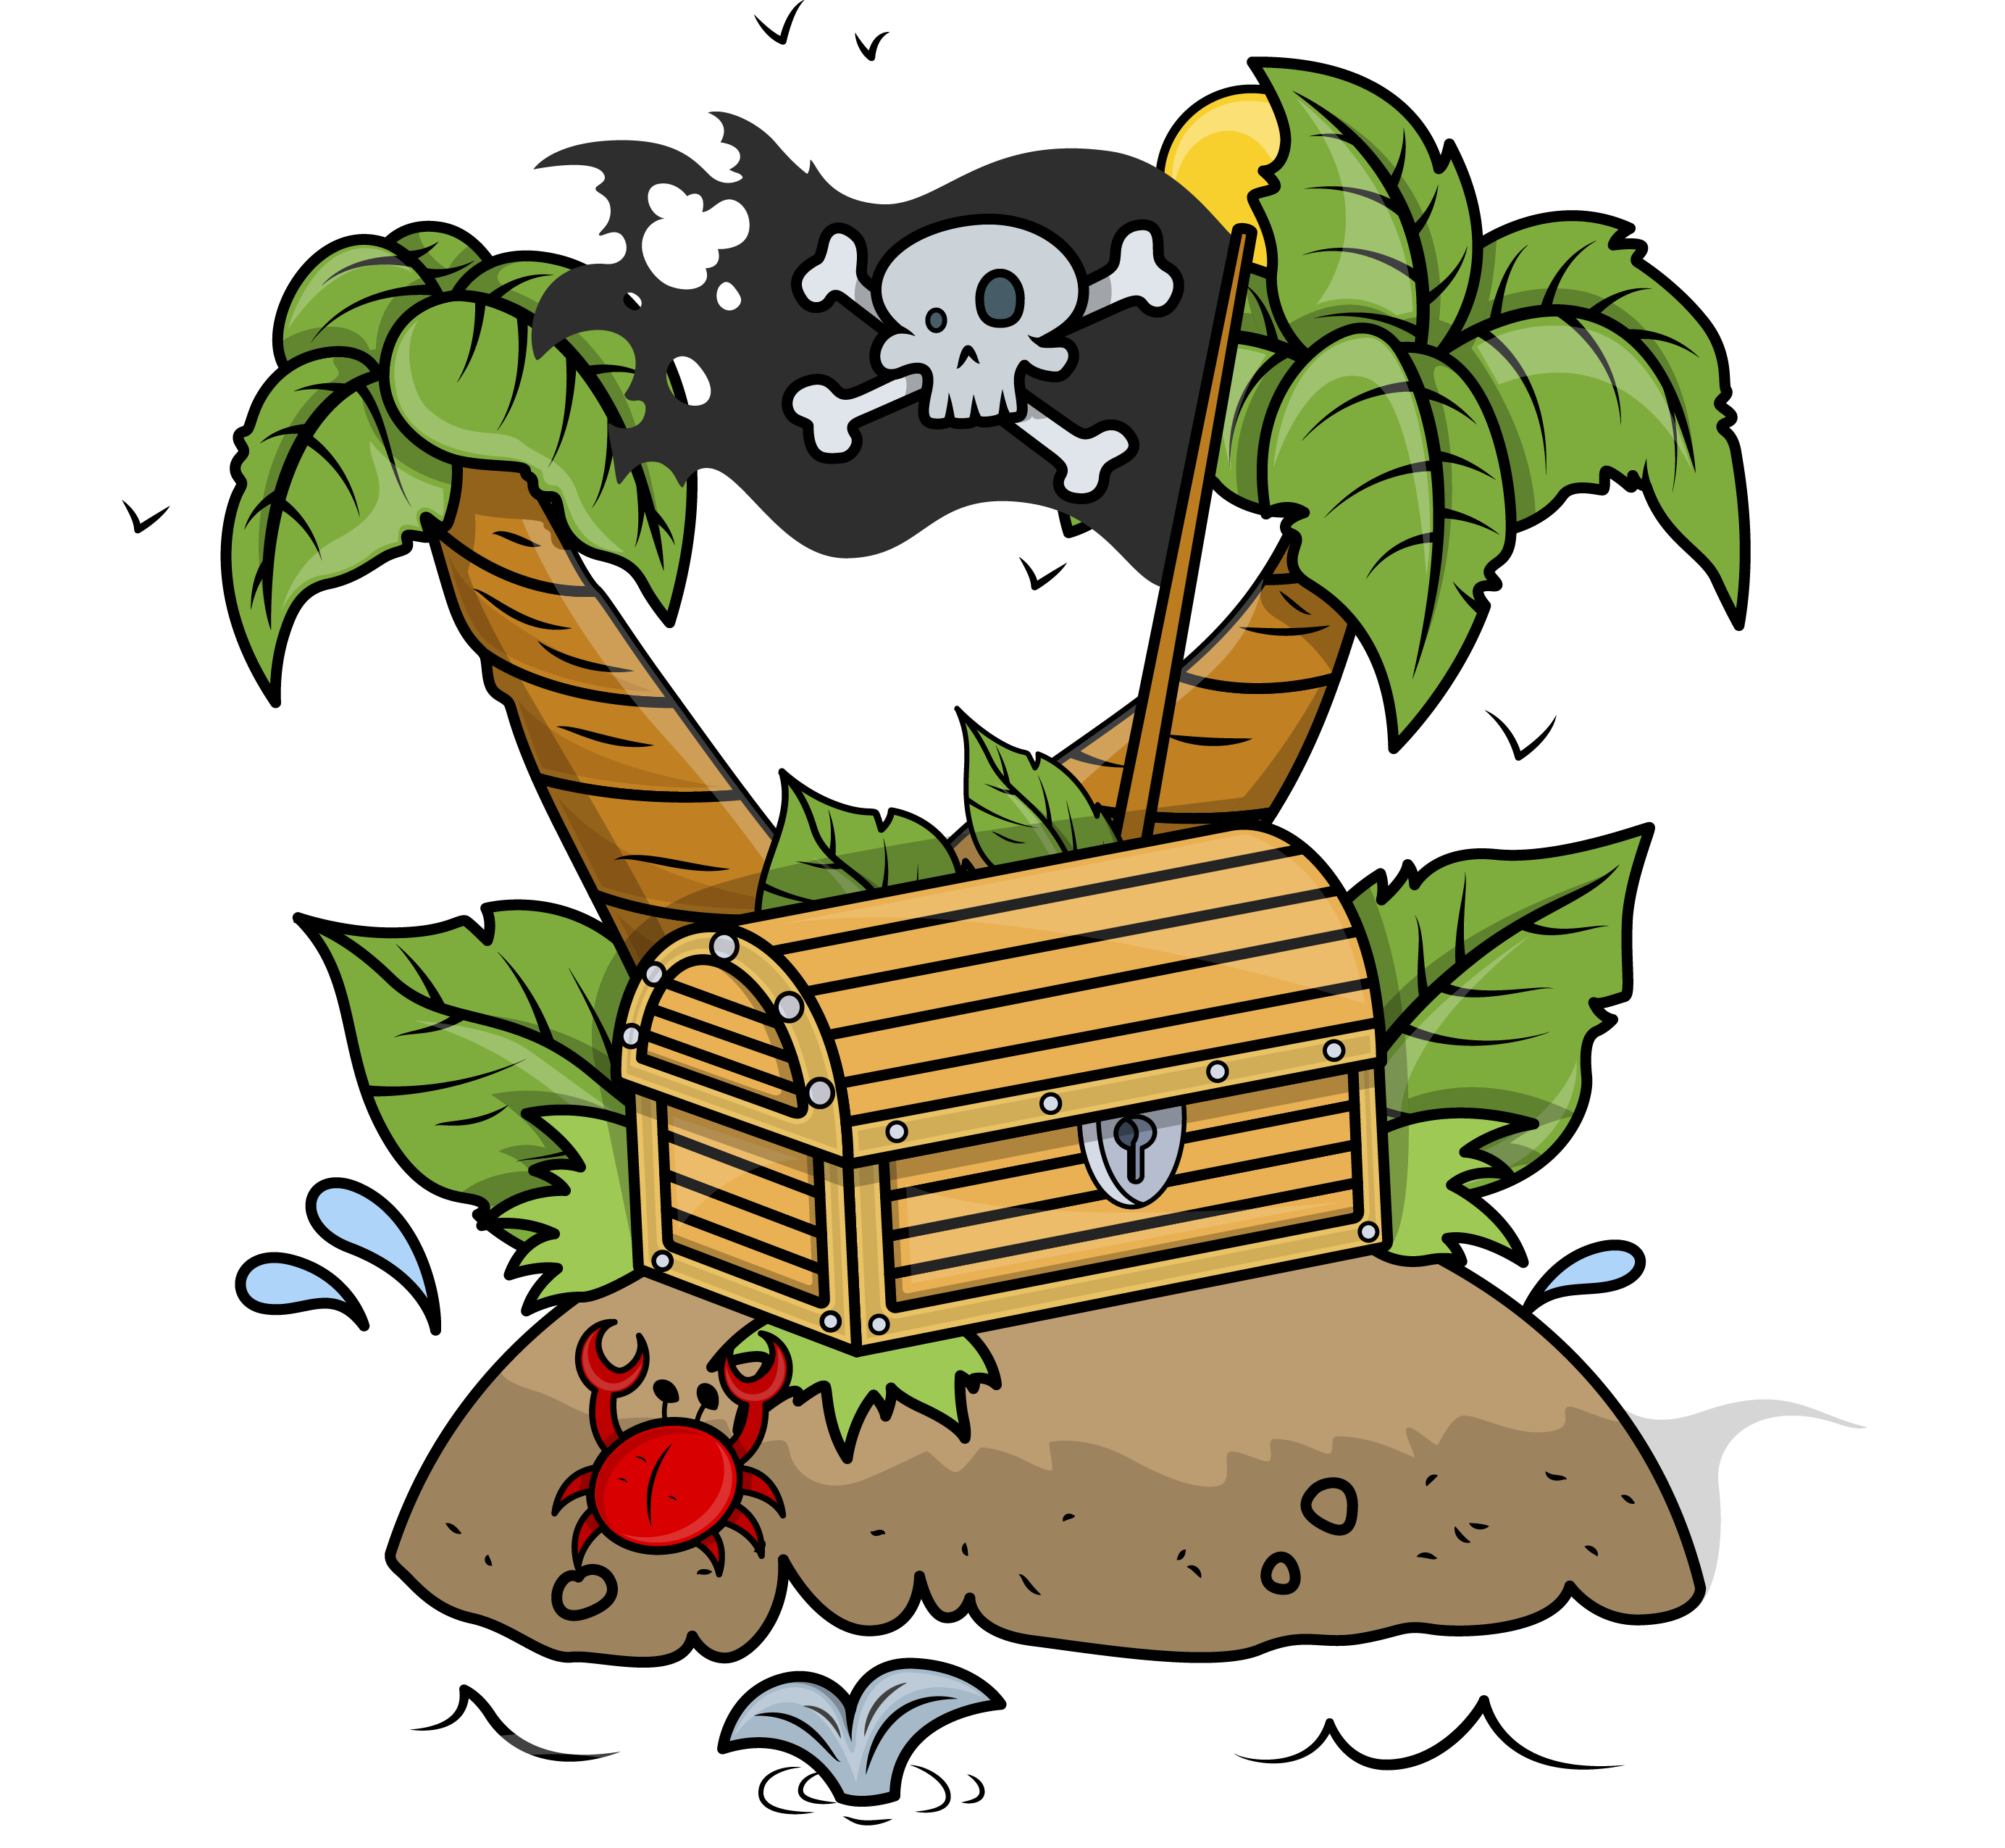 Pirate money clipart royalty free Pirate Treasure Chest Clipart at GetDrawings.com   Free for personal ... royalty free